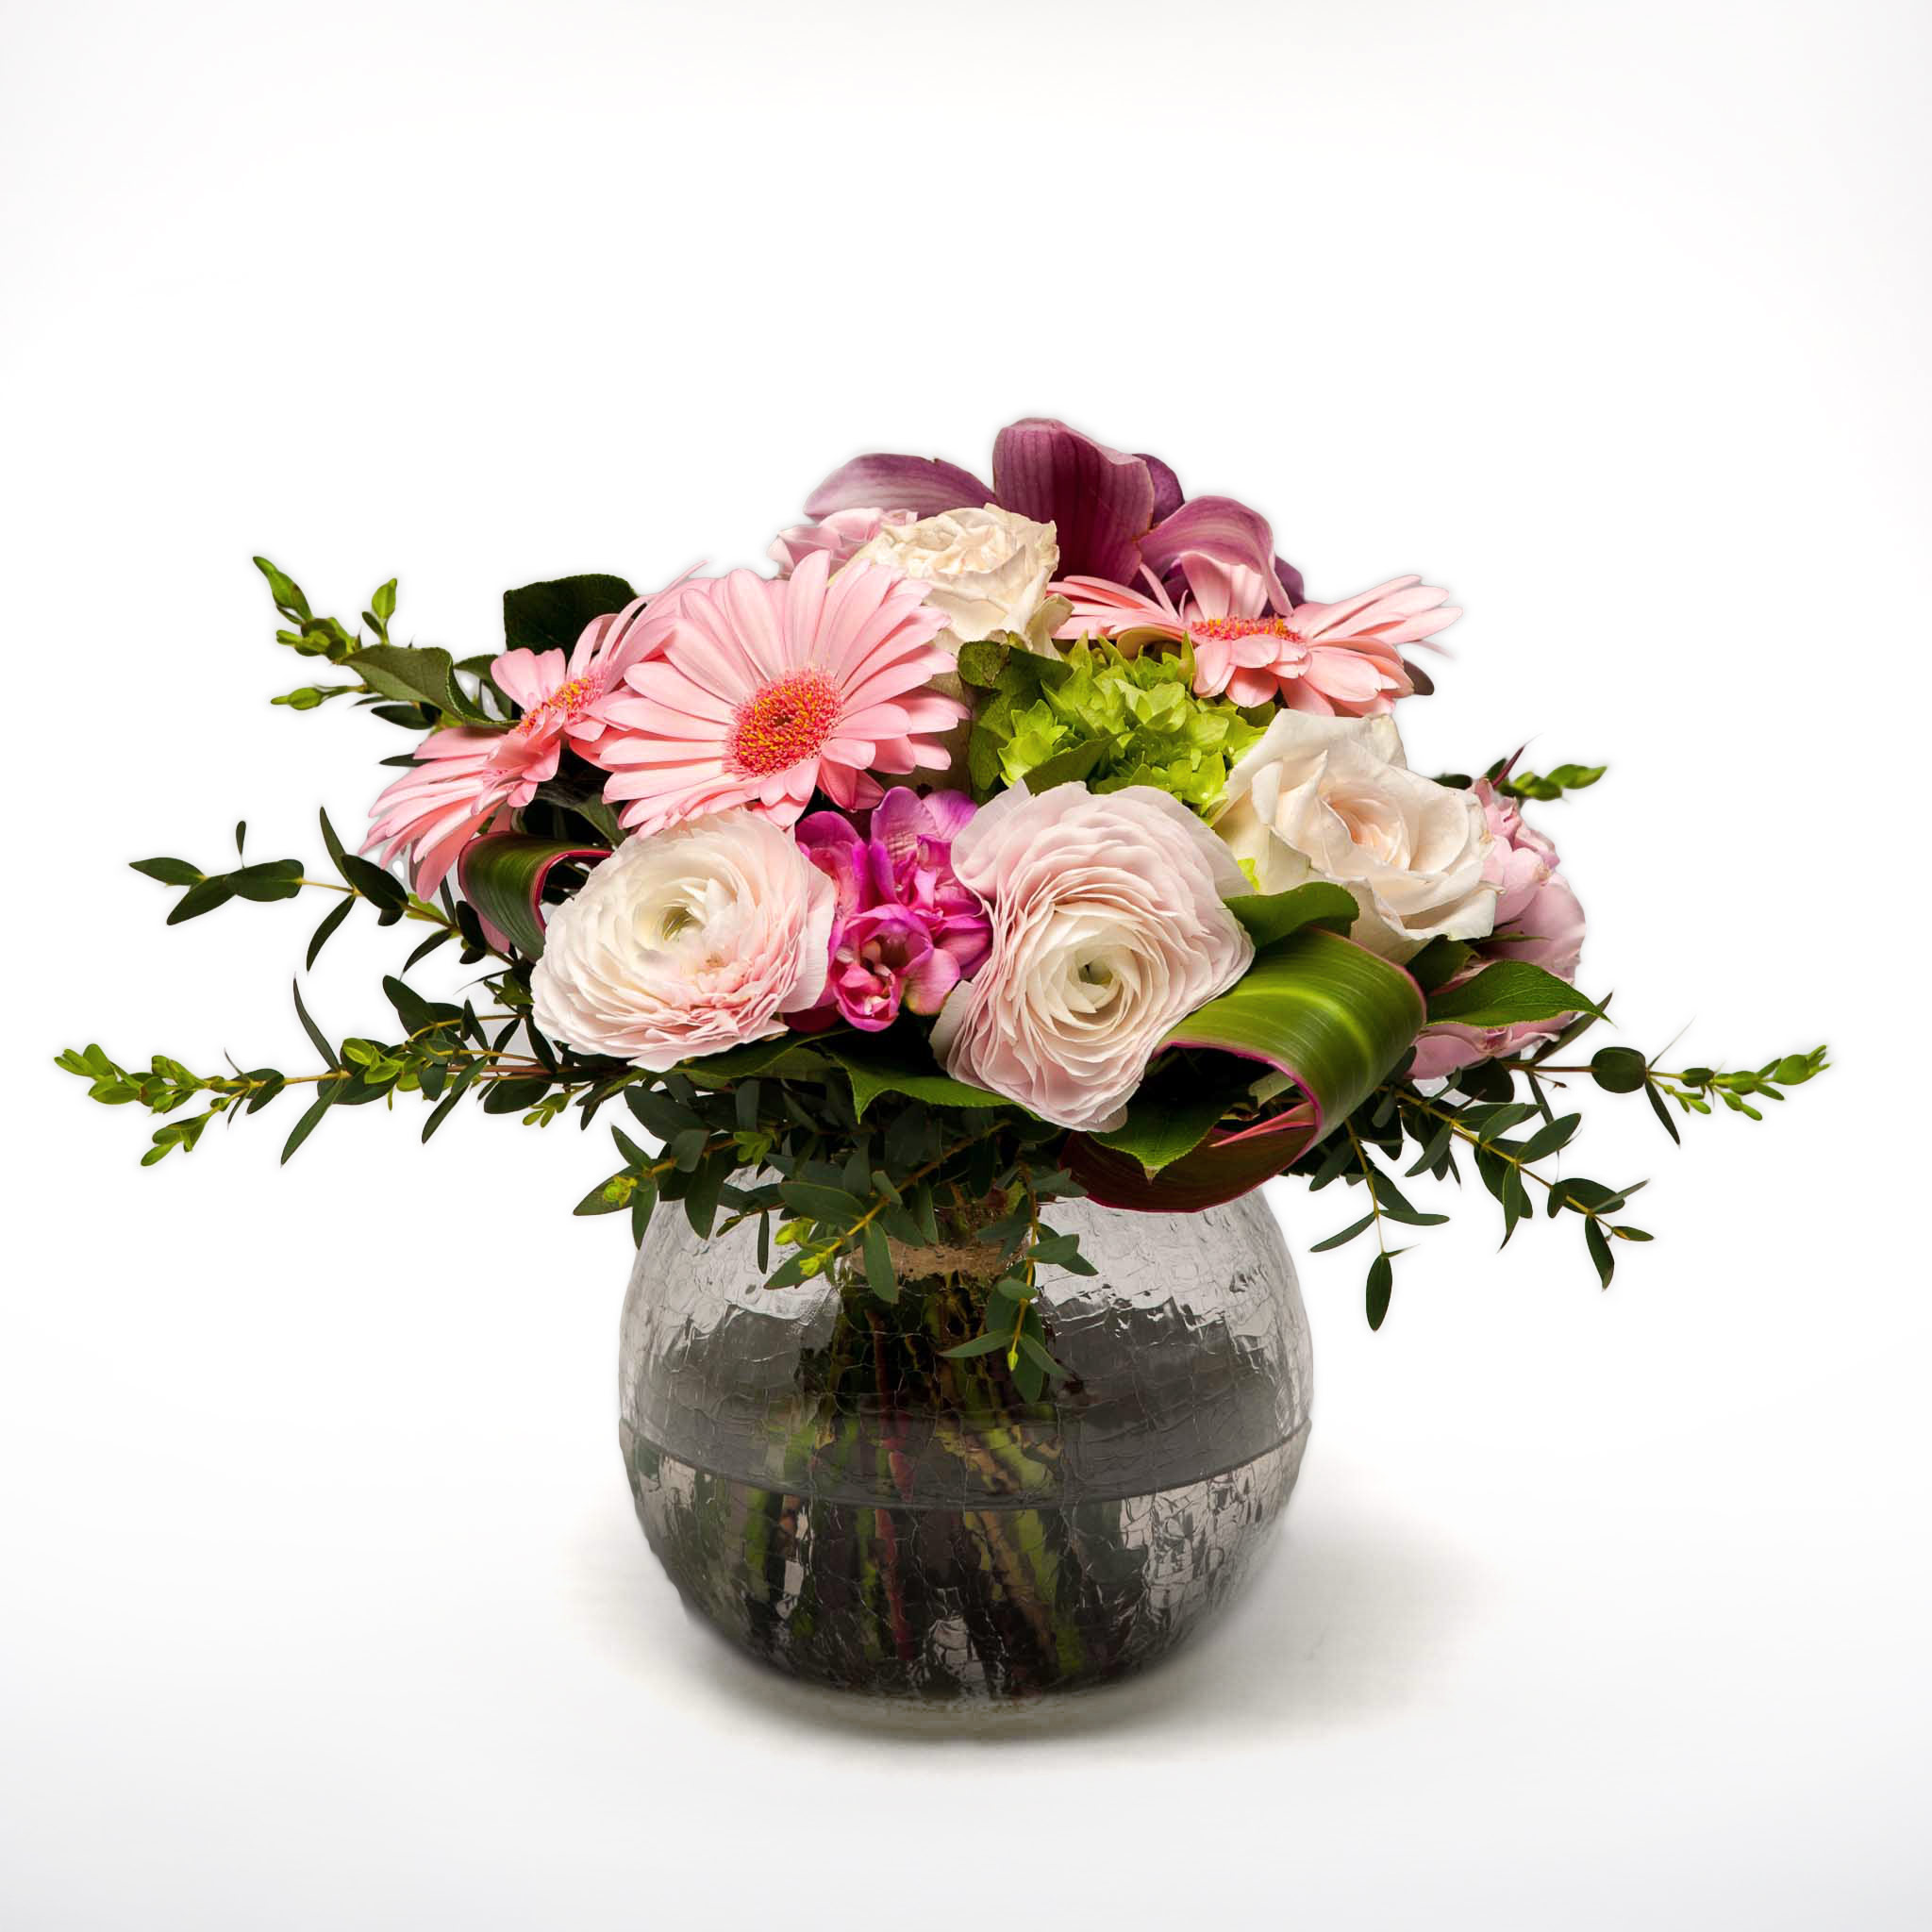 Renowned Montreal florist Marie Vermette